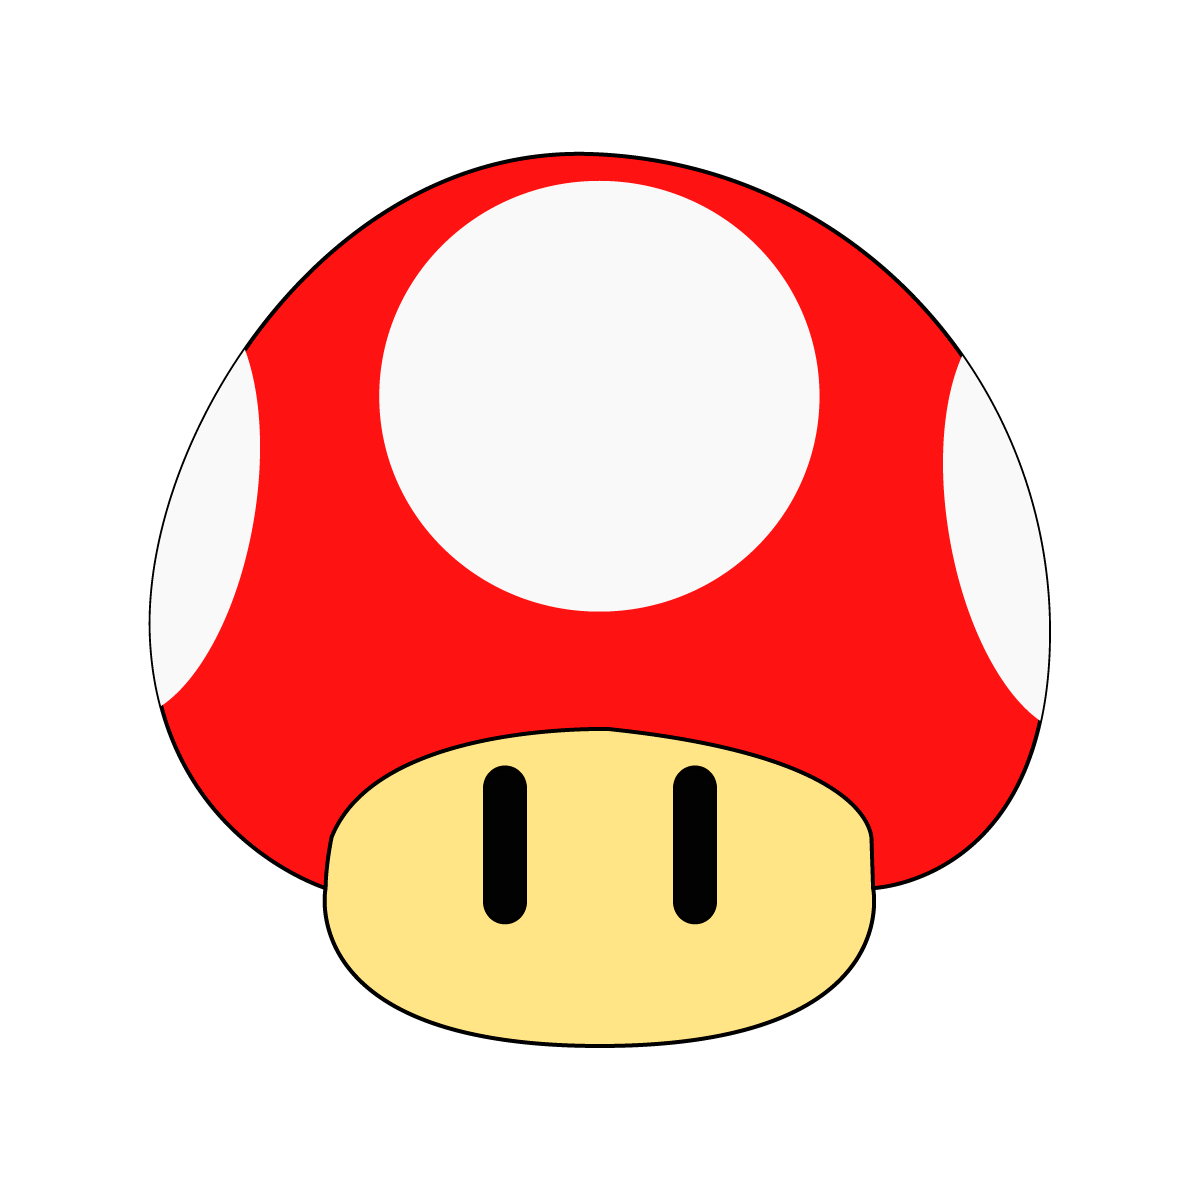 D a 64 la seta de super mario 365 d as 365 dibujos for What color is mario